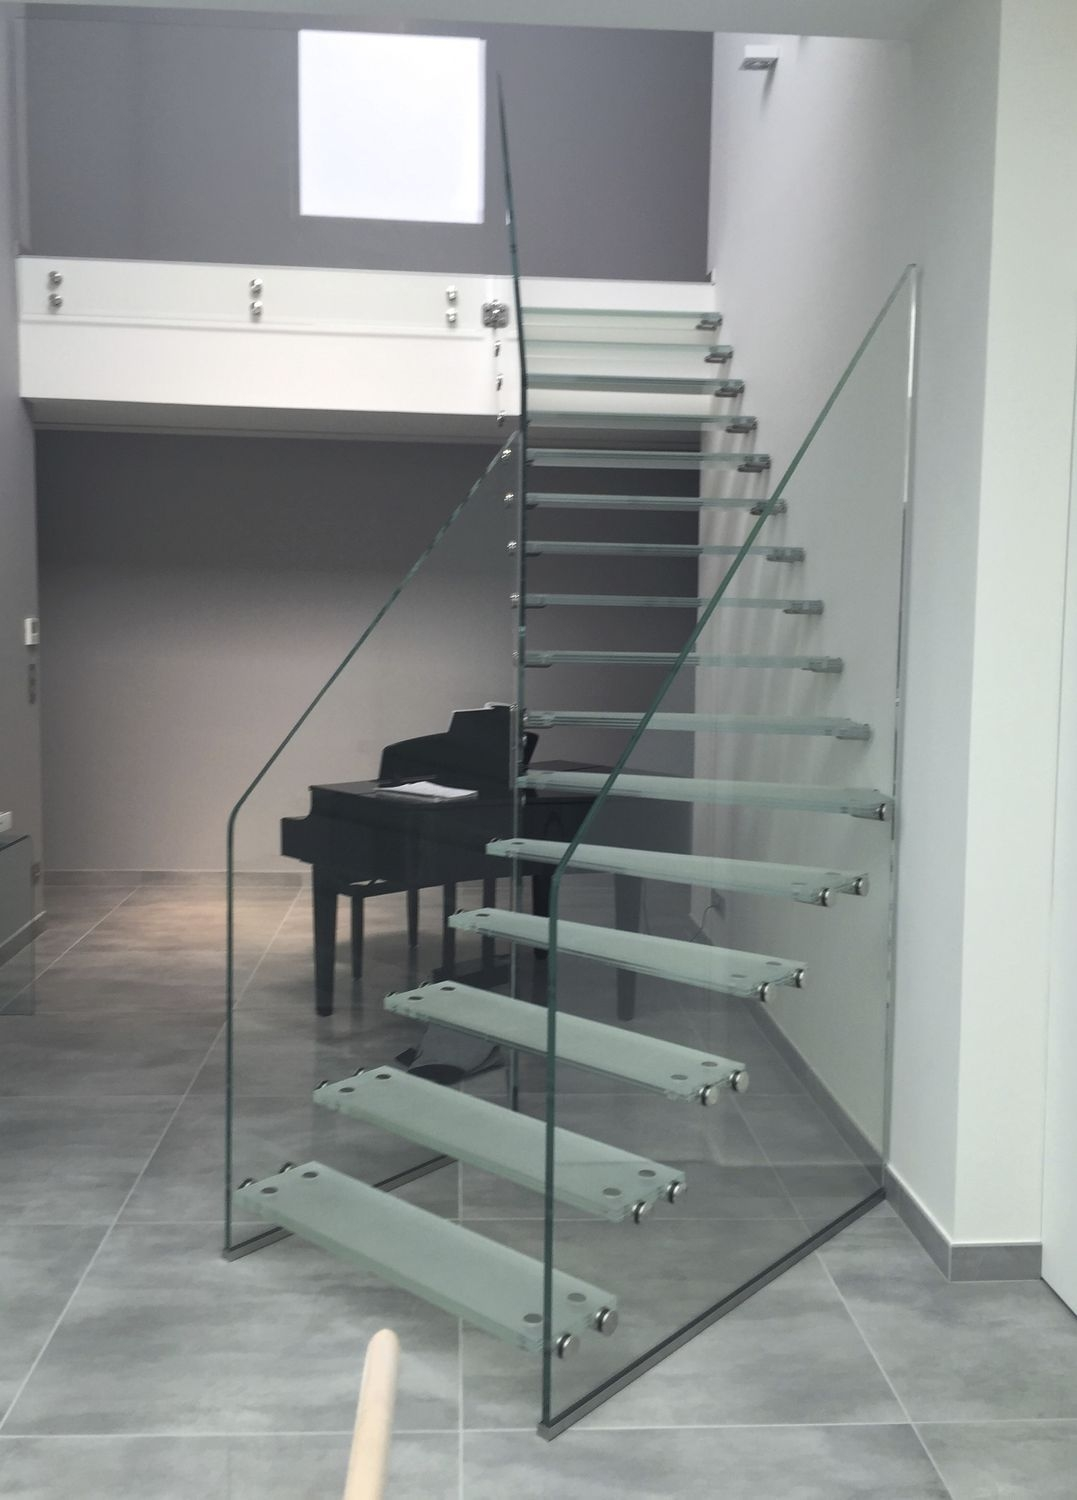 Quarter Turn Staircase Skystep Trescalini Glass Frame | Frosted Glass Stair Panels | Smoked | Toughened | Deck | Balcony | Contemporary